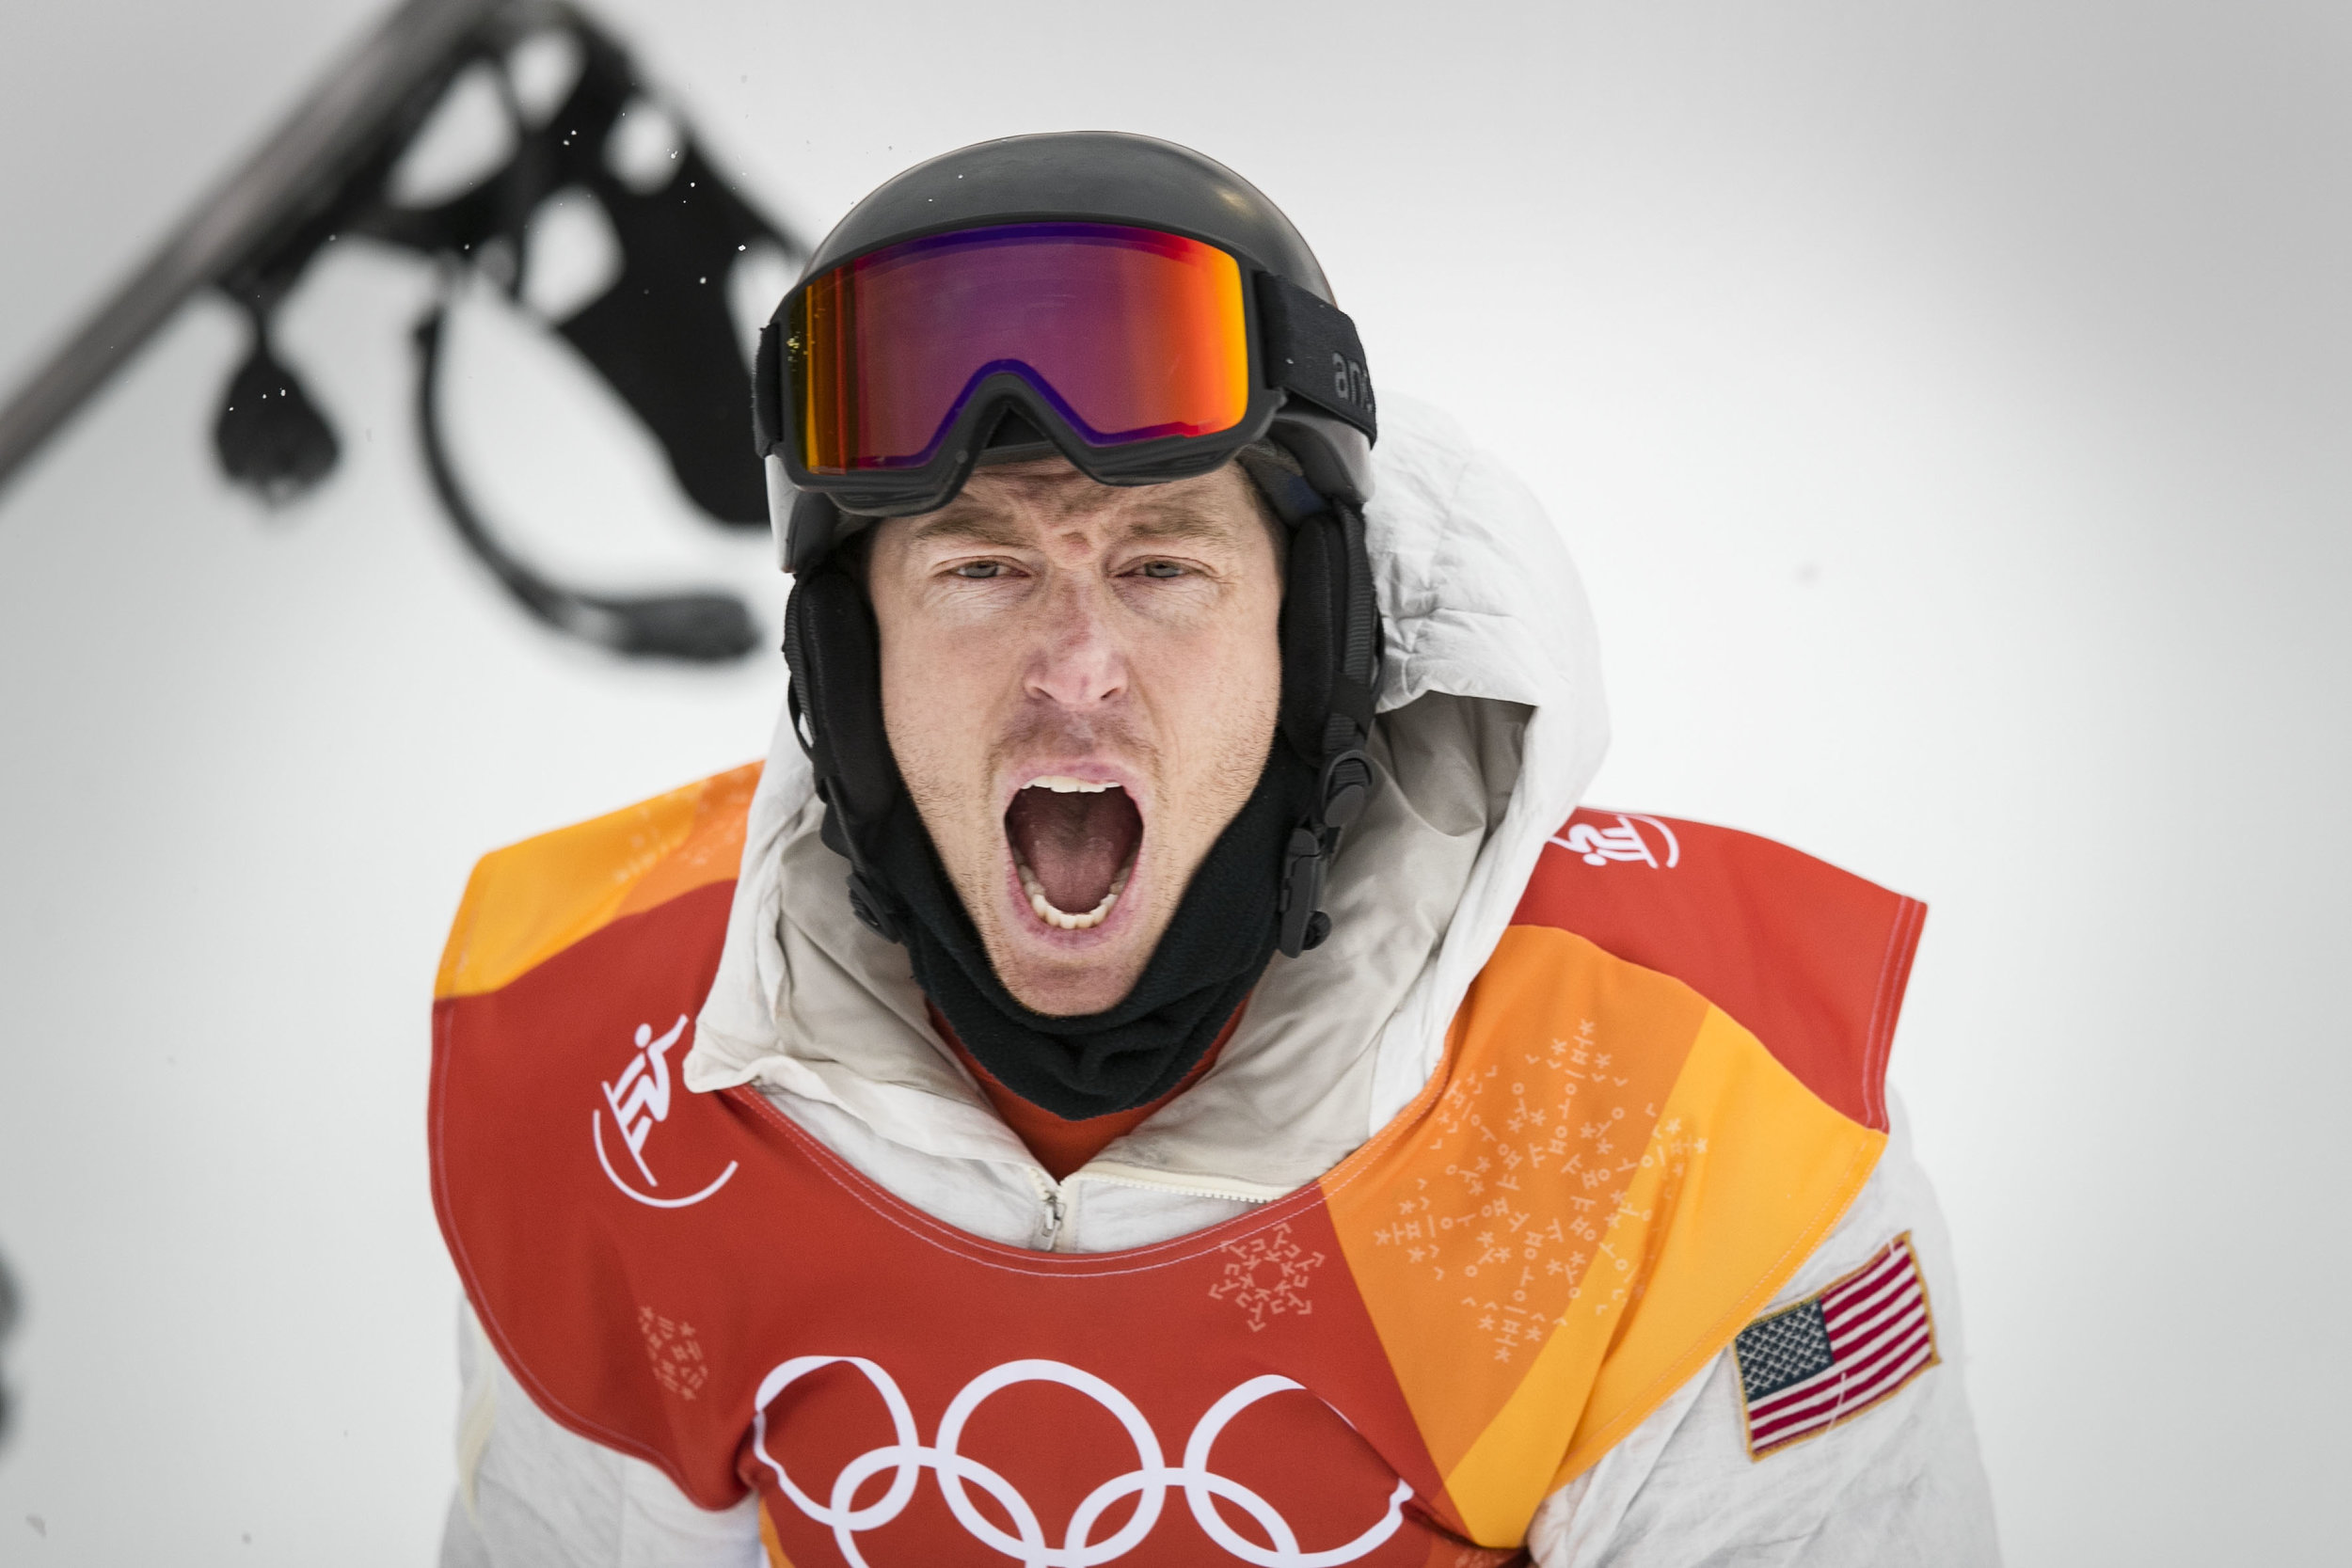 Halfpipe champion snowboarder Shaun White, throws his board and screams in excitement after seeing his score of 97.75 leading him to his third Olympic gold medal, Feb. 14 at Phoenix Snow Park. White broke into tears and hugged his friends and family before the venue celebration.